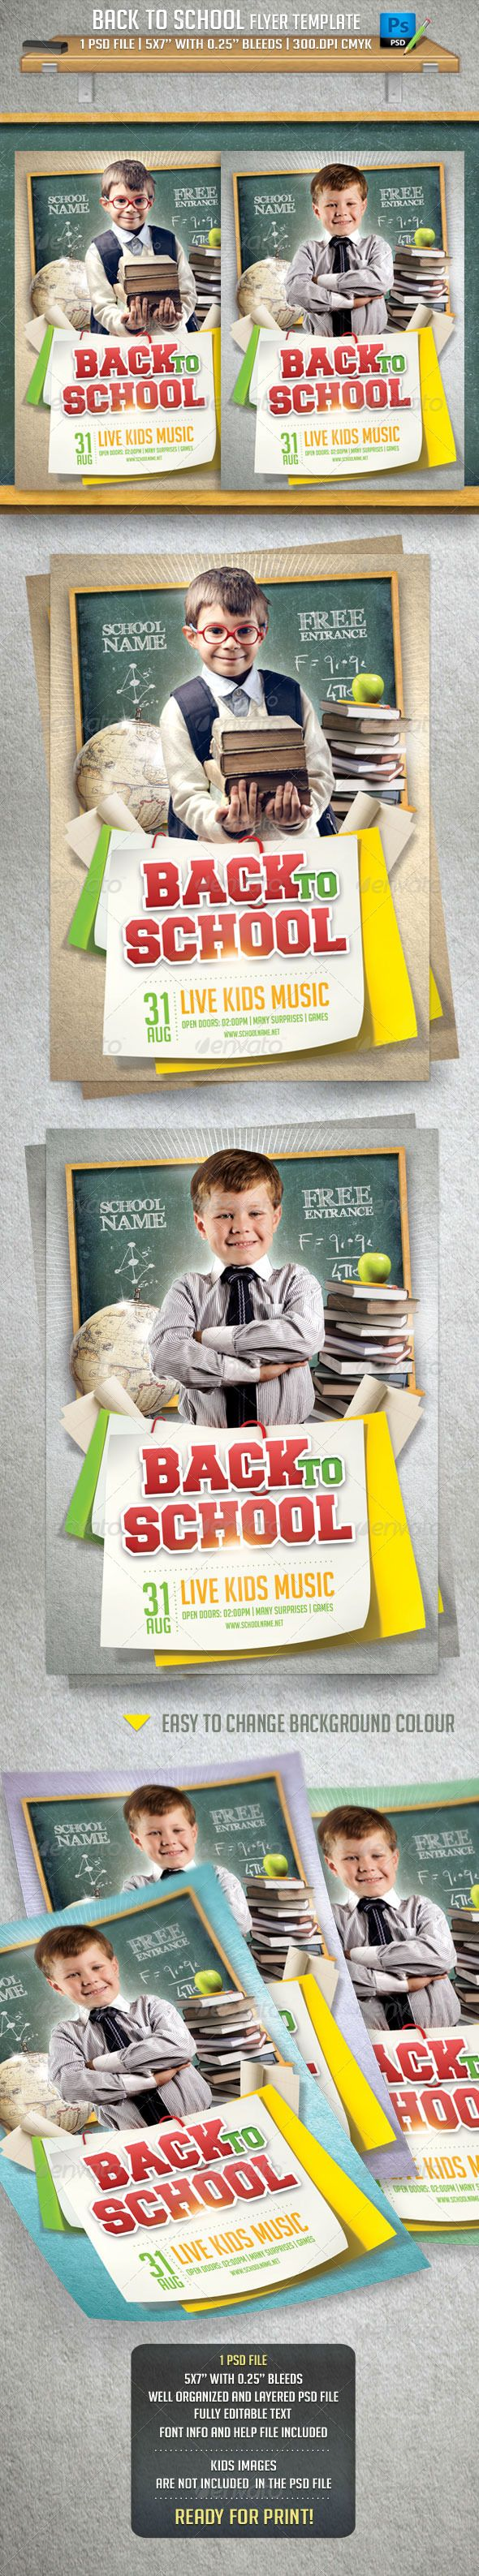 back to school flyer template back to flyer template and back back to school flyer template photoshop psd template event available here rarr